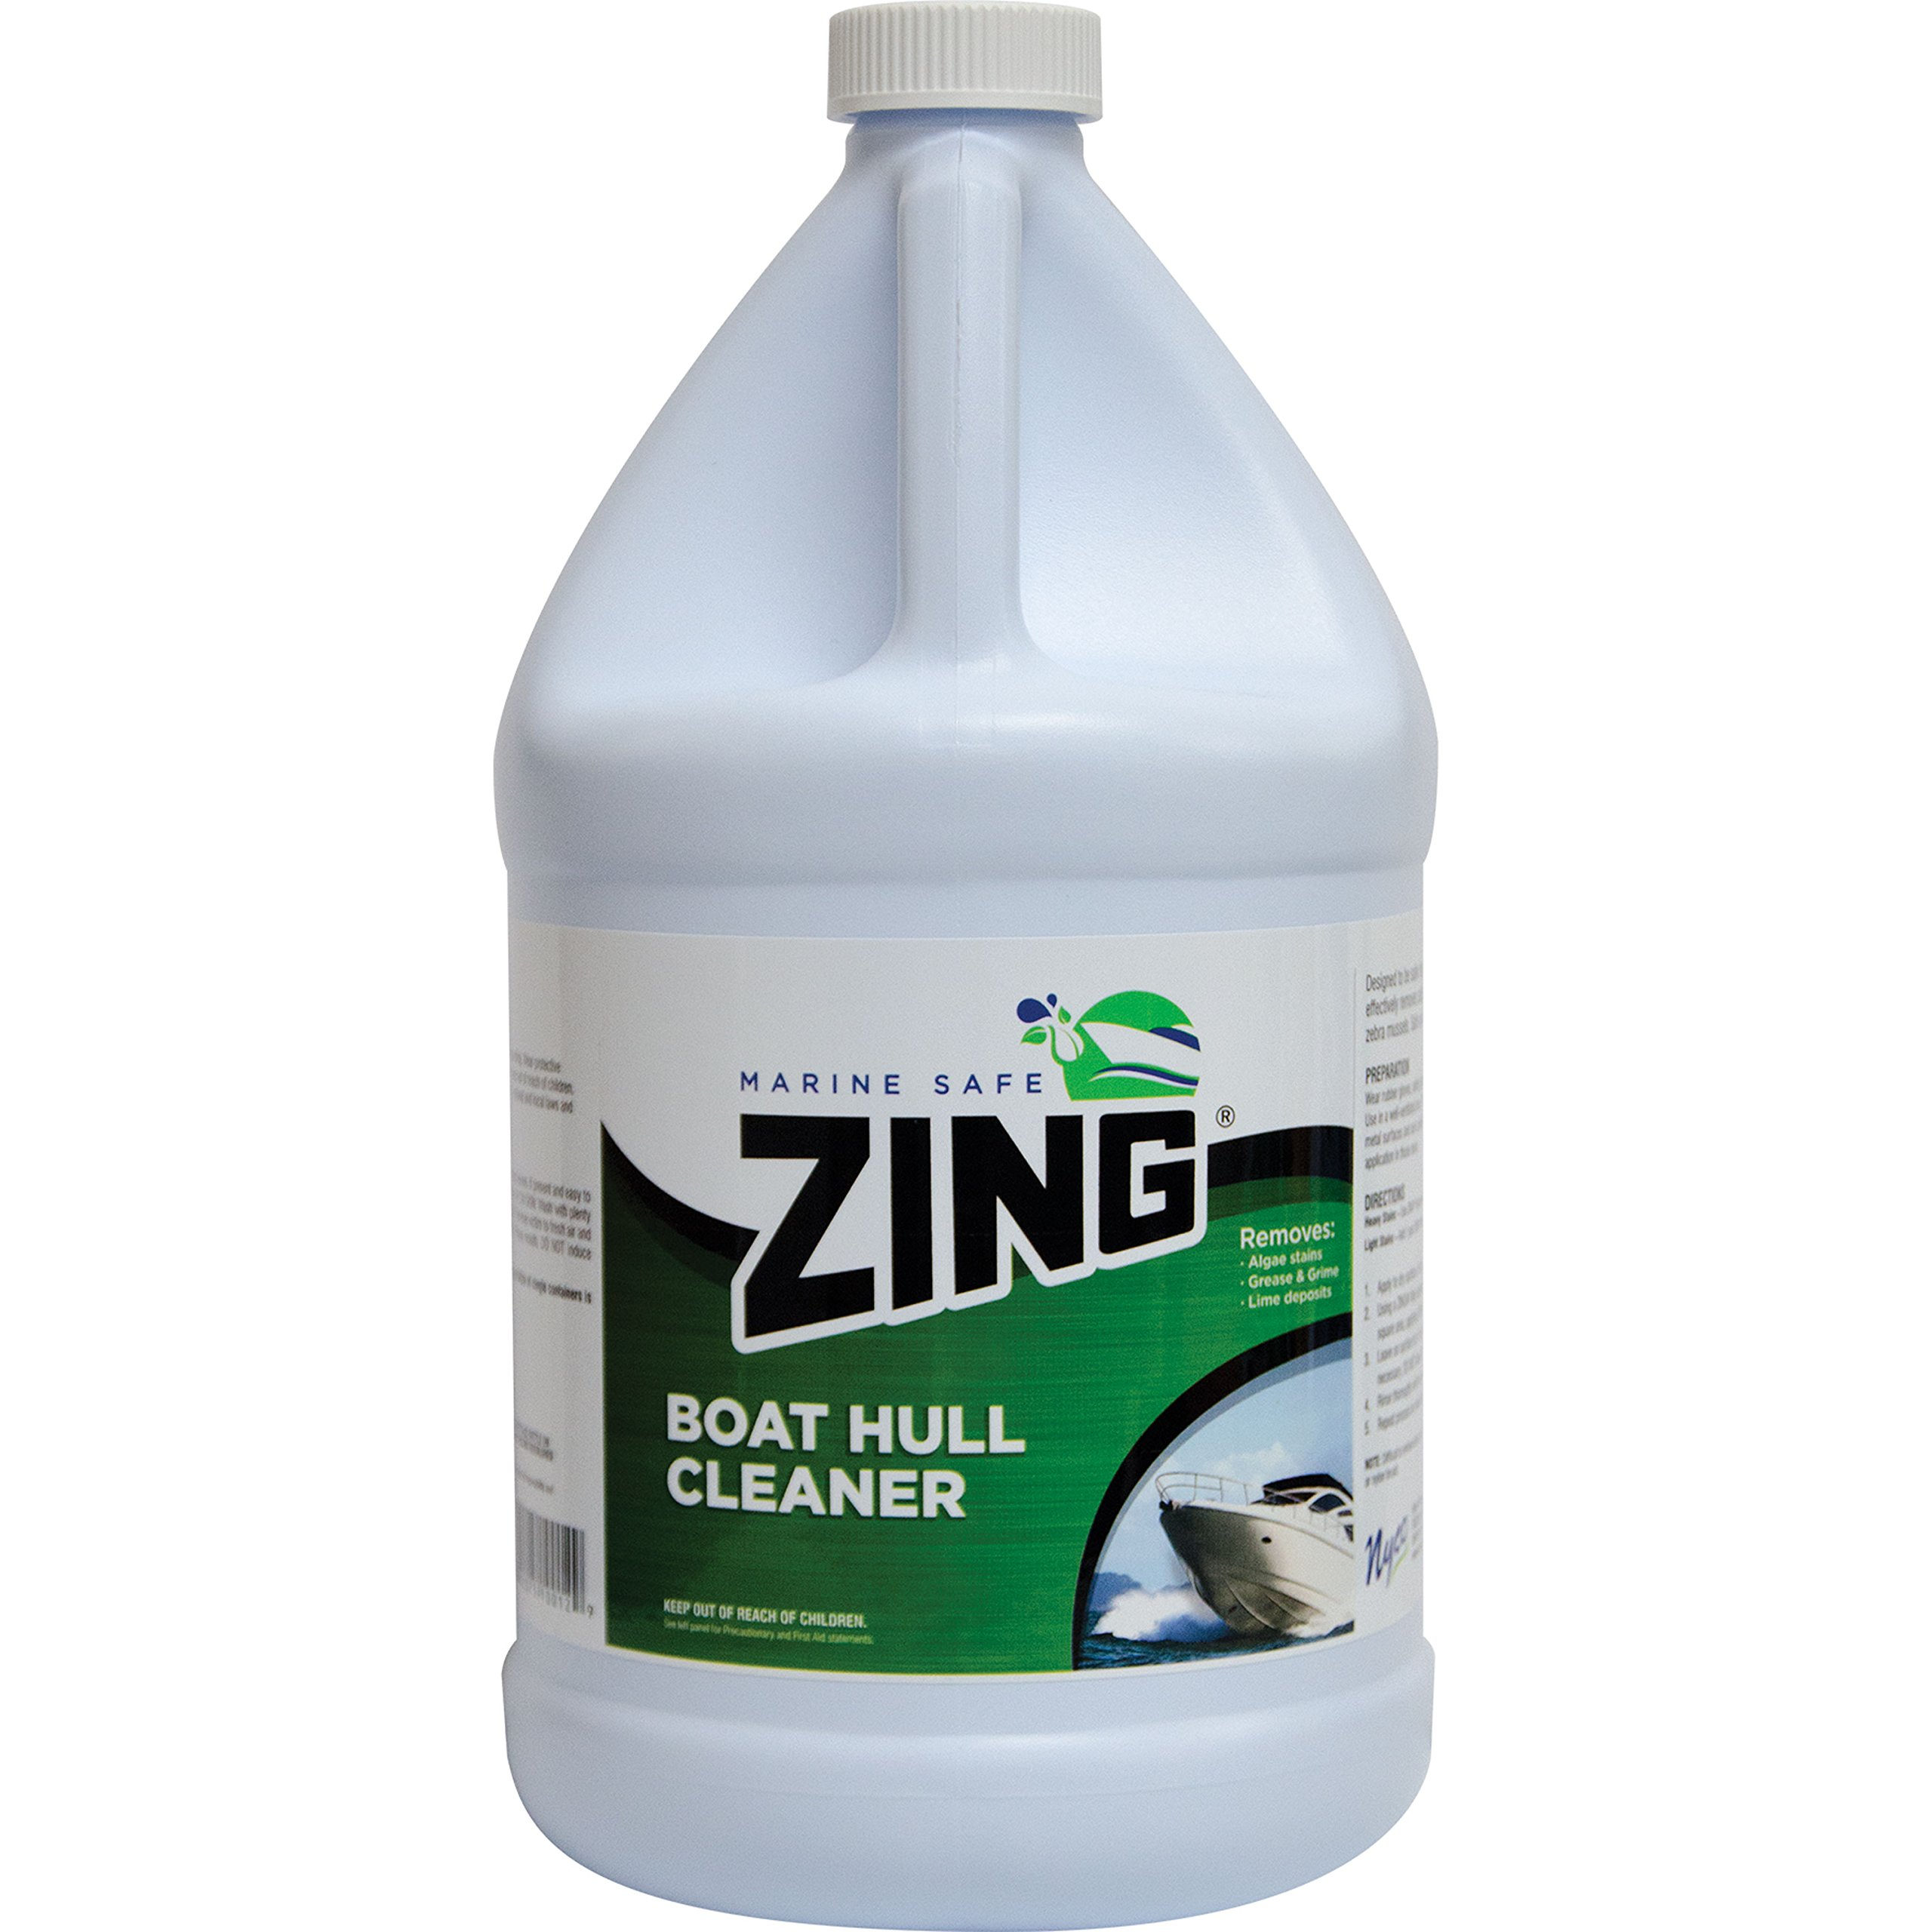 ZING 10118 Marine Safe Boat Hull Cleaner - 1 Gallon